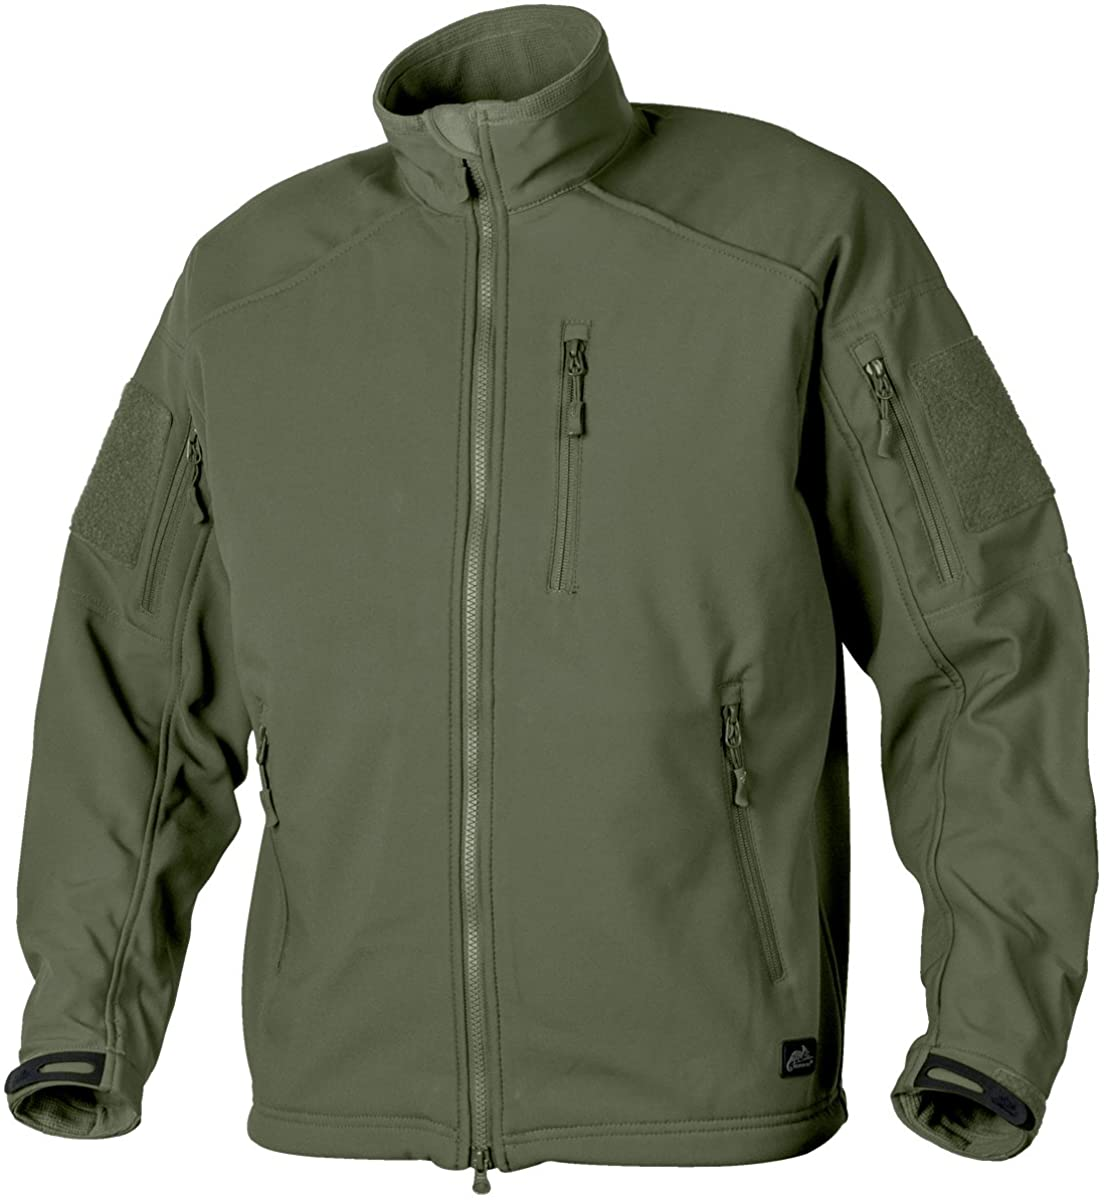 Helikon Men's Delta Tactical Jacket Olive Green